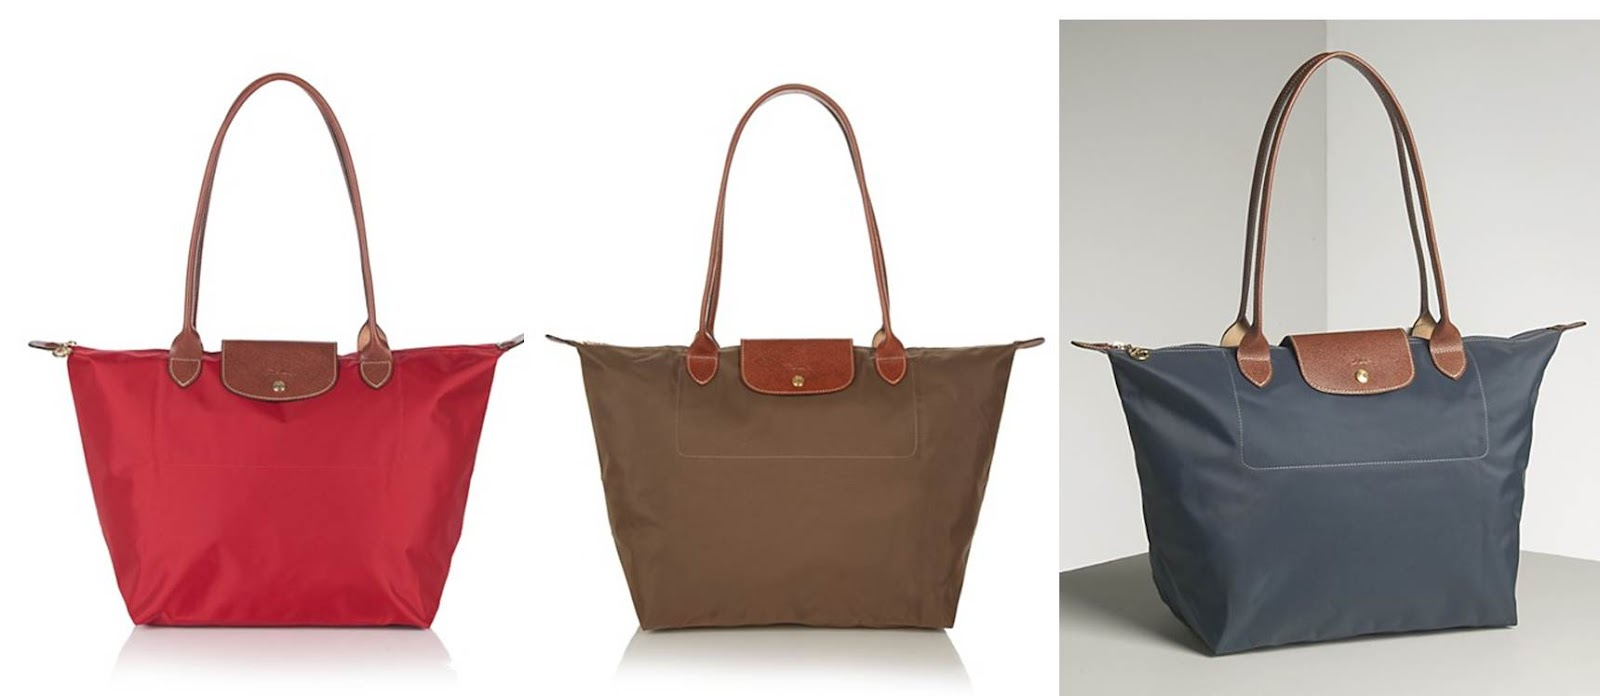 Longchamp Bag Le Pliage Colours : Amore venti longchamp